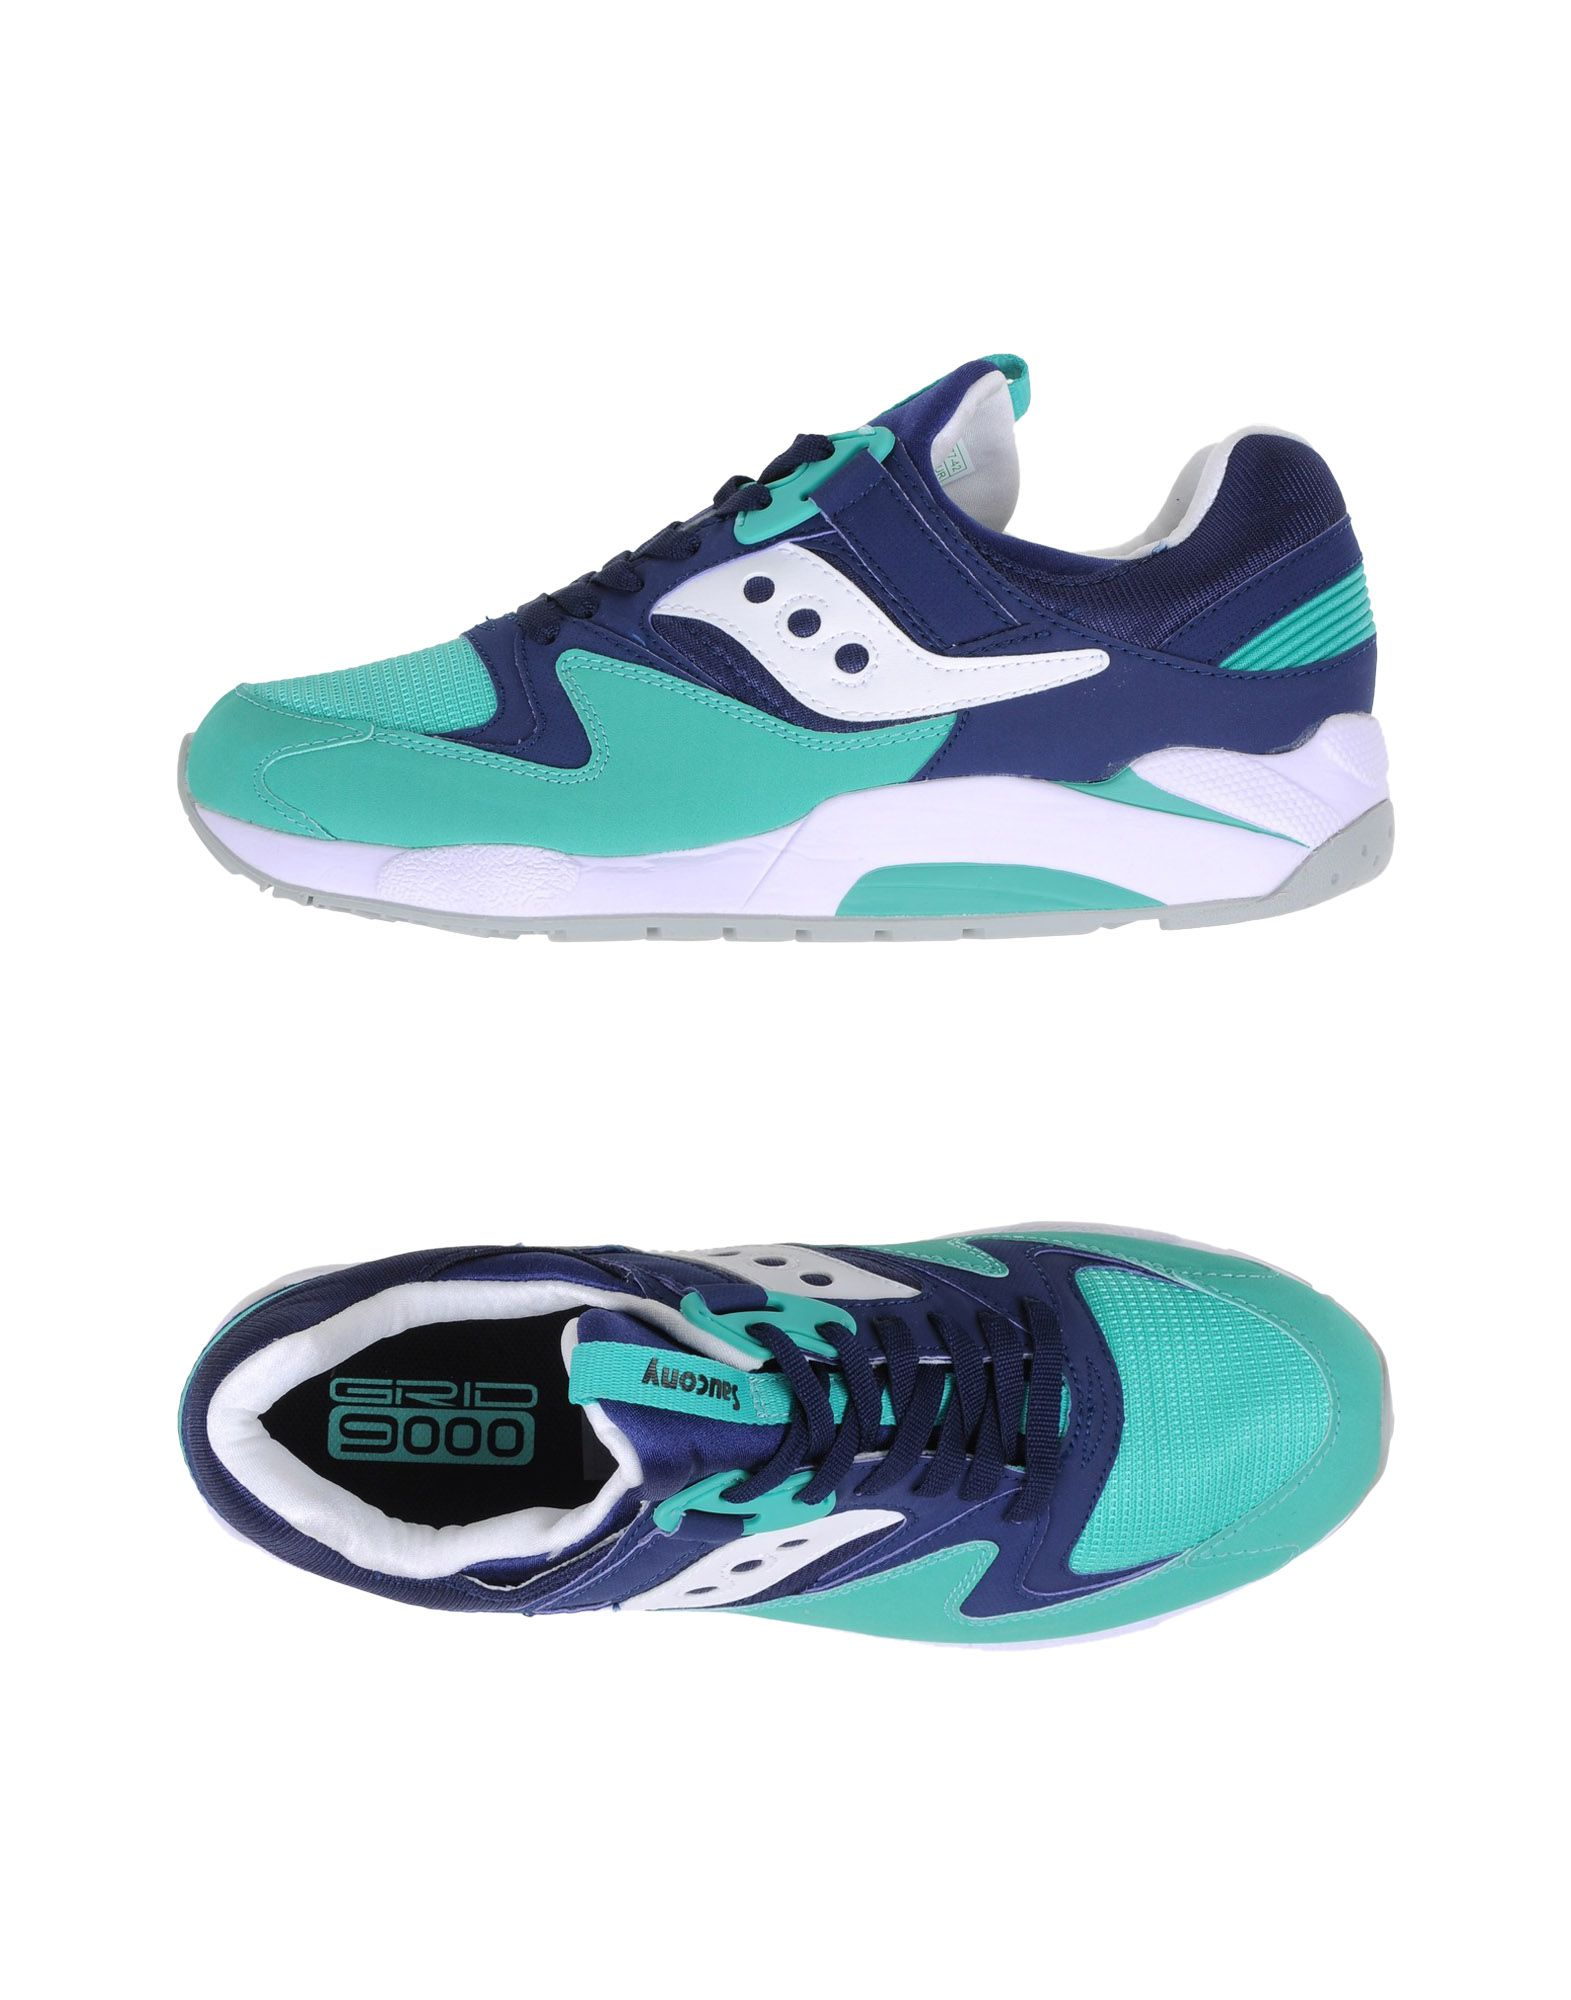 Sneakers 9000 Saucony Grid 9000 Sneakers - Uomo - 11017454PS 0d3be2